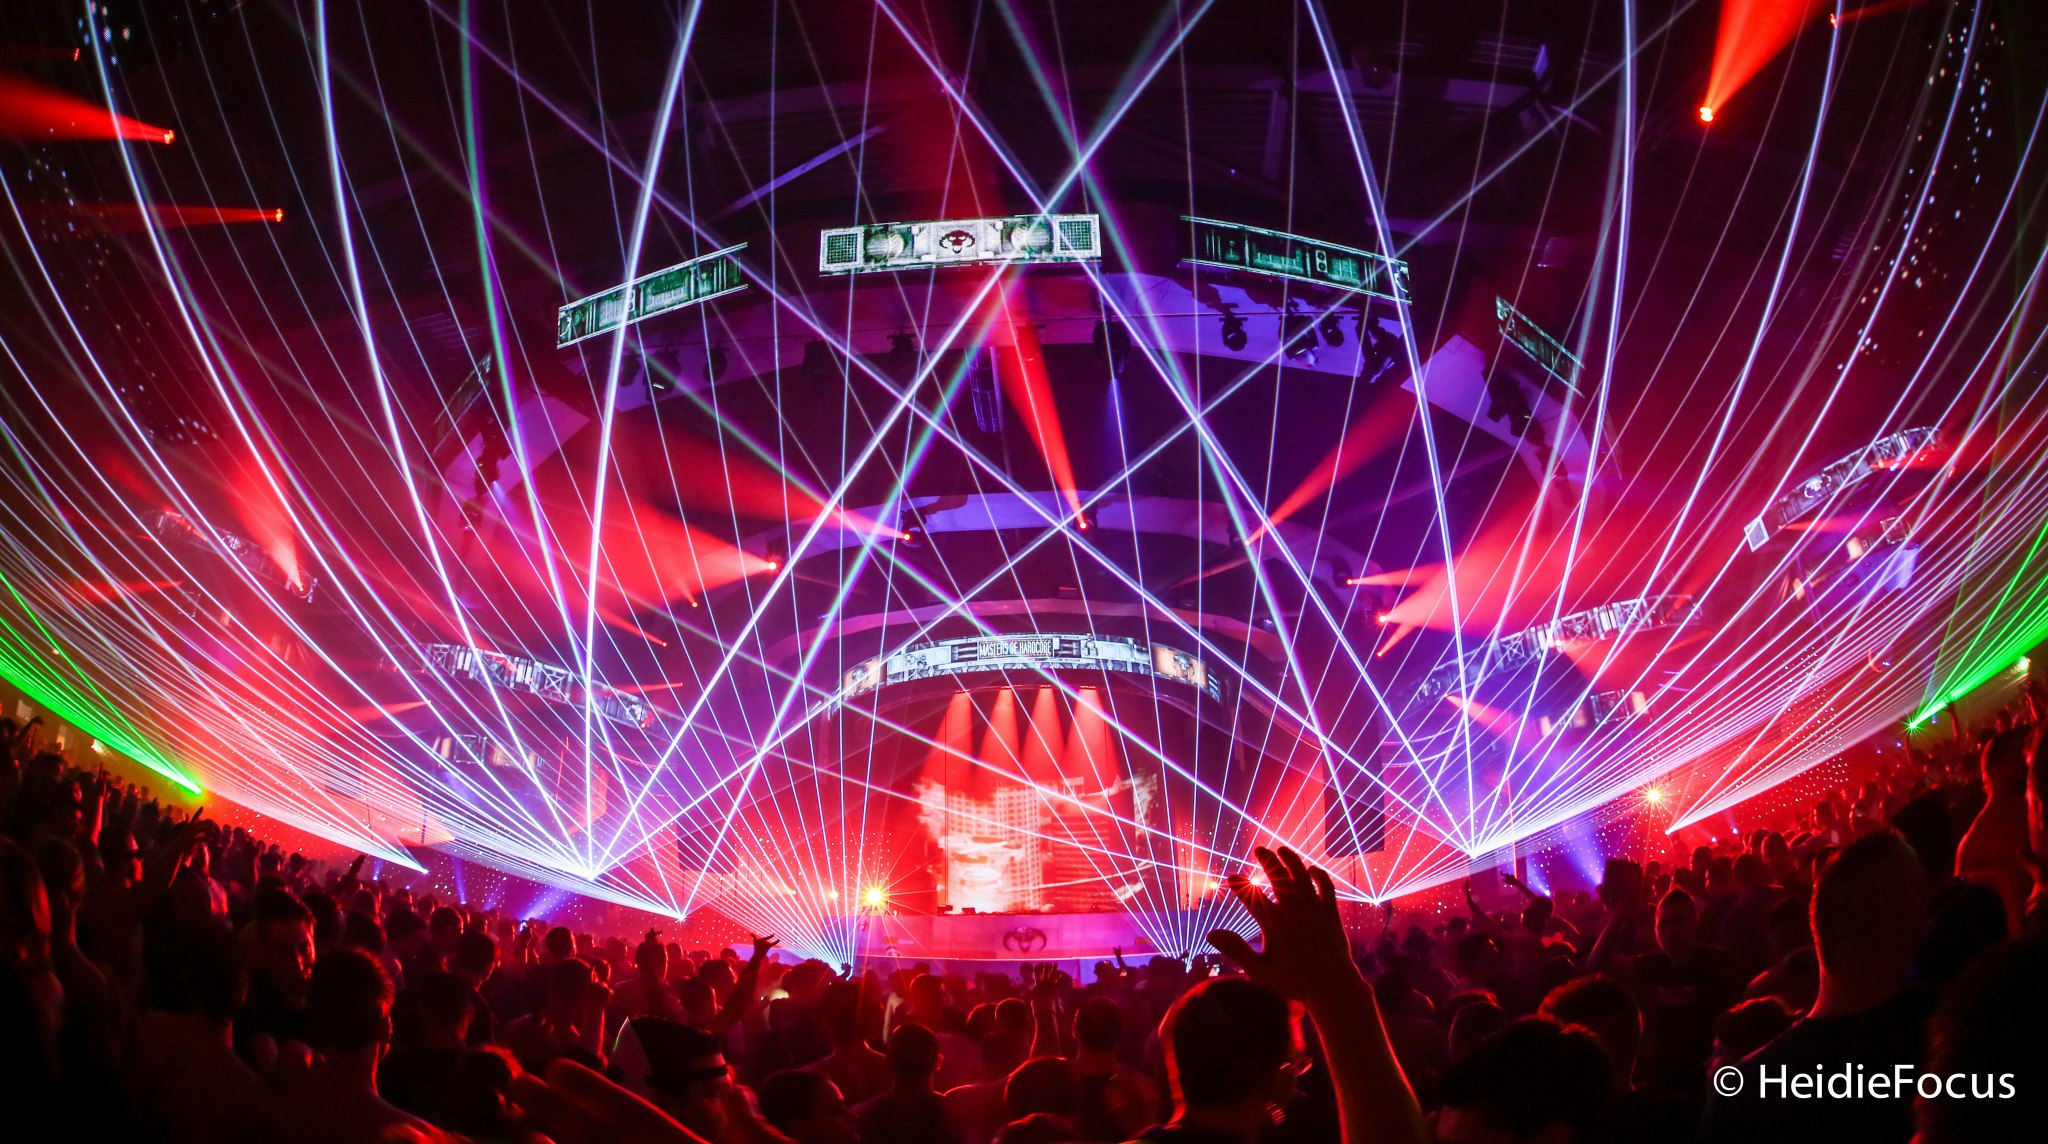 Eye candy 40 photos of beautiful EDM festival stage designs 2048x1144